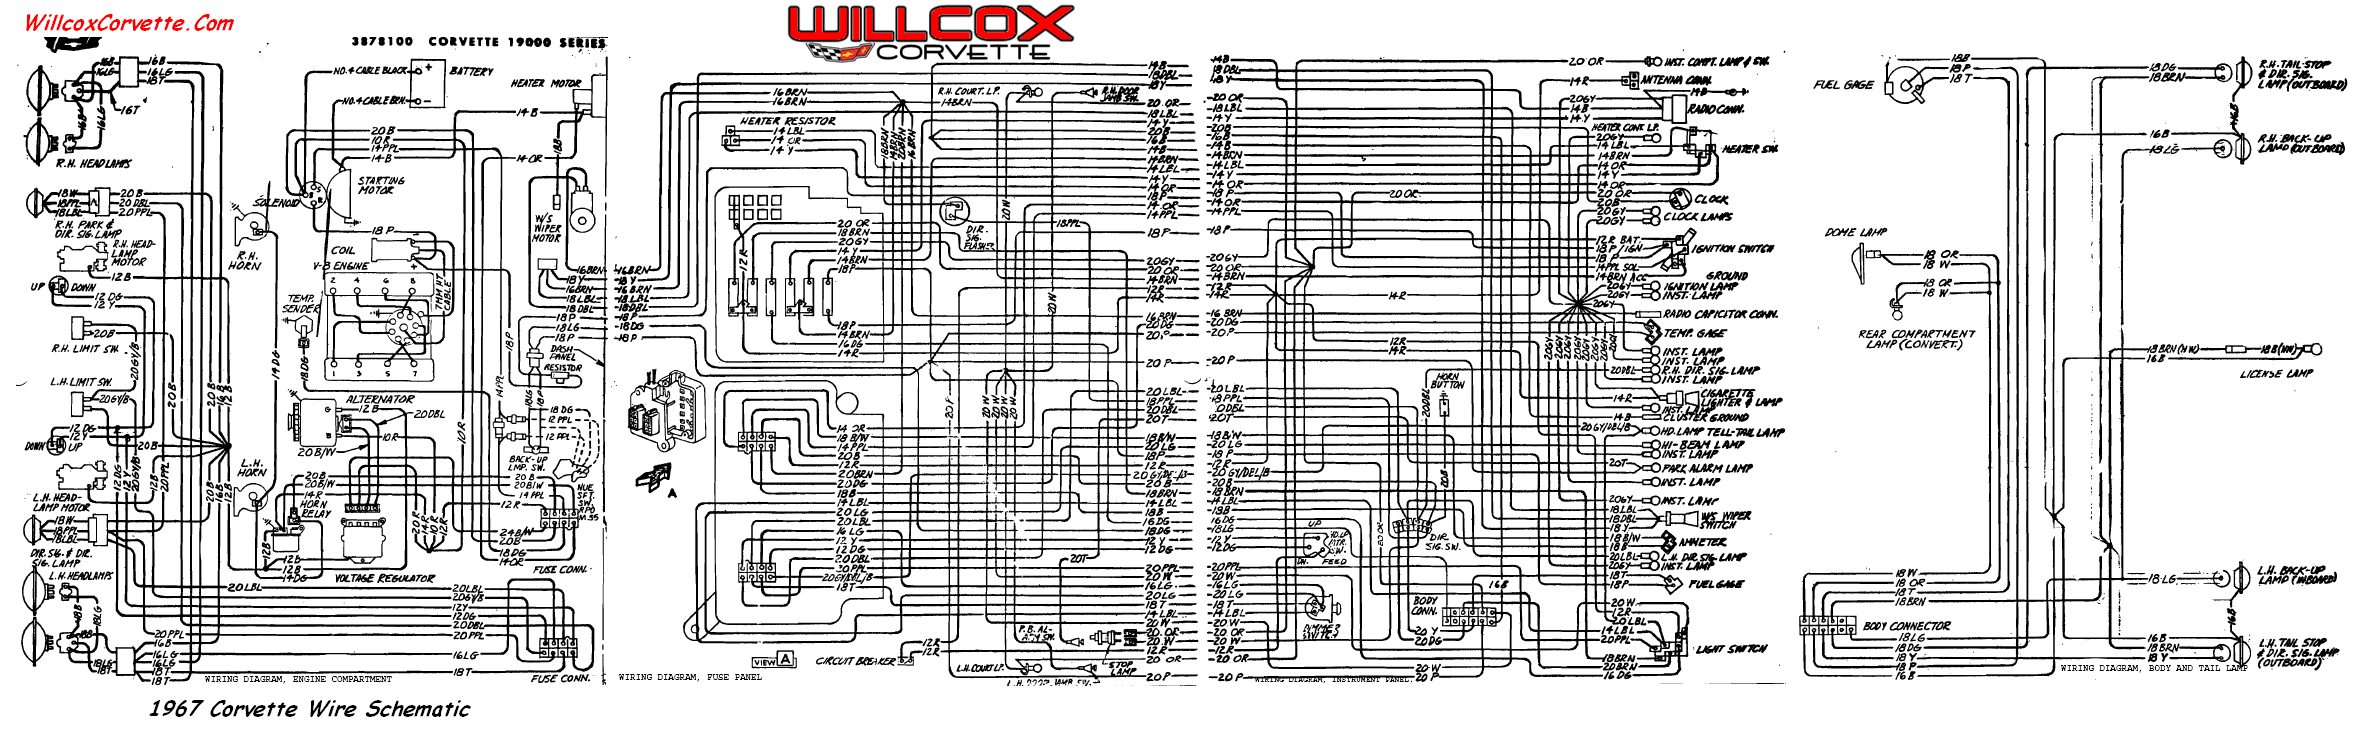 67 wire schematic for tracing wires wiring diagram for 1966 corvette readingrat net 66 Corvette at panicattacktreatment.co